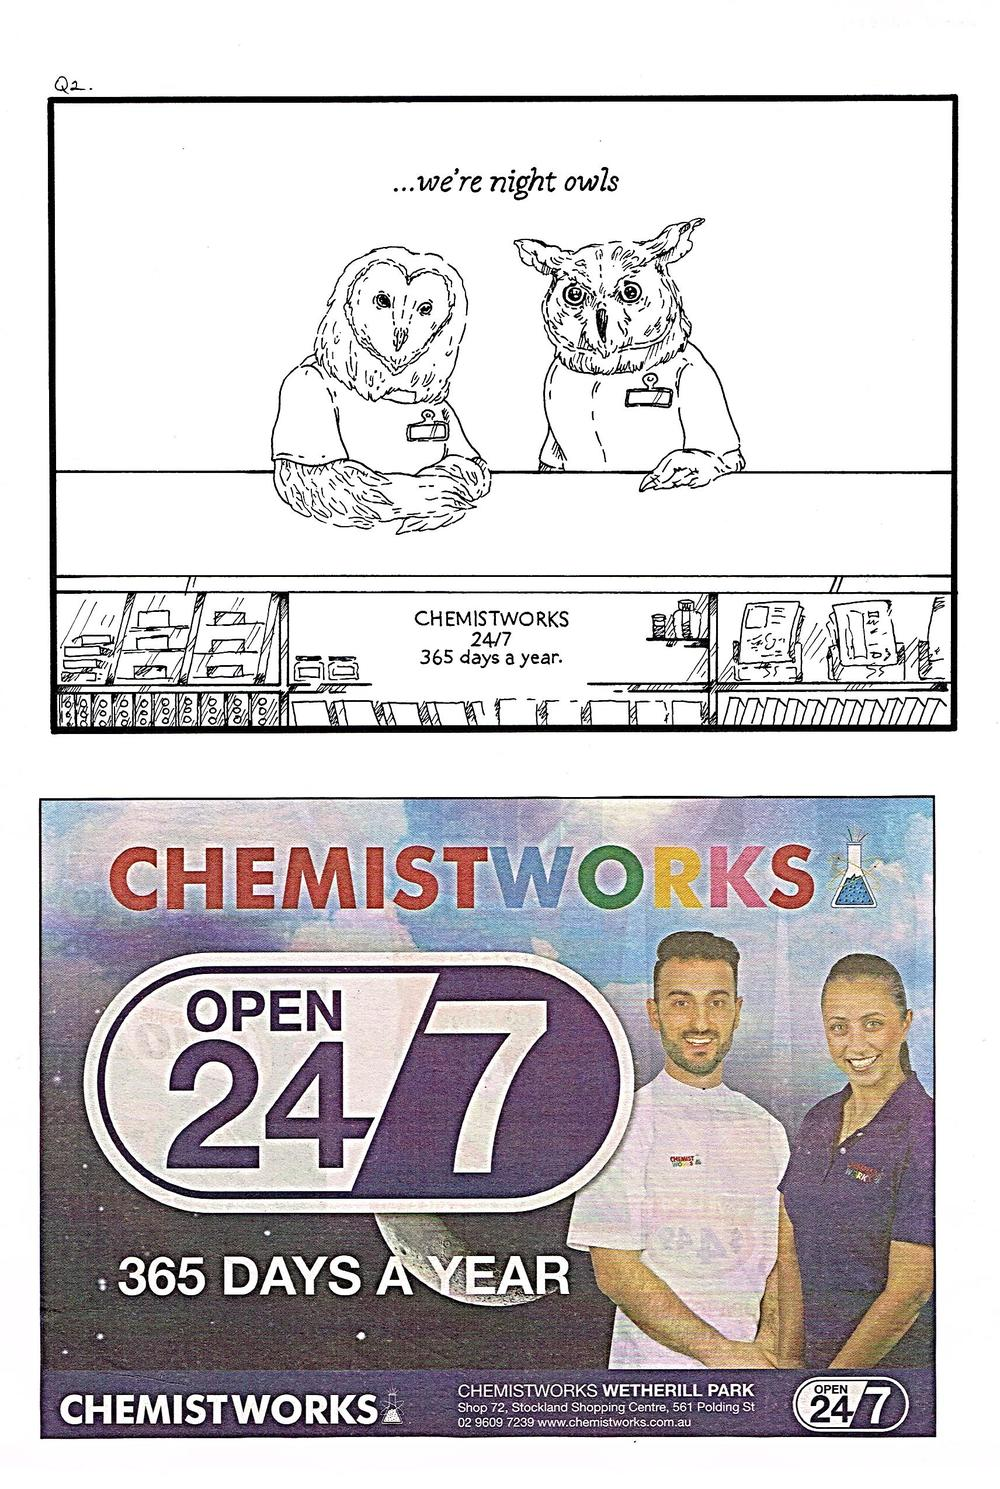 The brief asked us to change an ad we thought was particularly godawful...I chose the unfortunate people at Chemistworks to pick on...